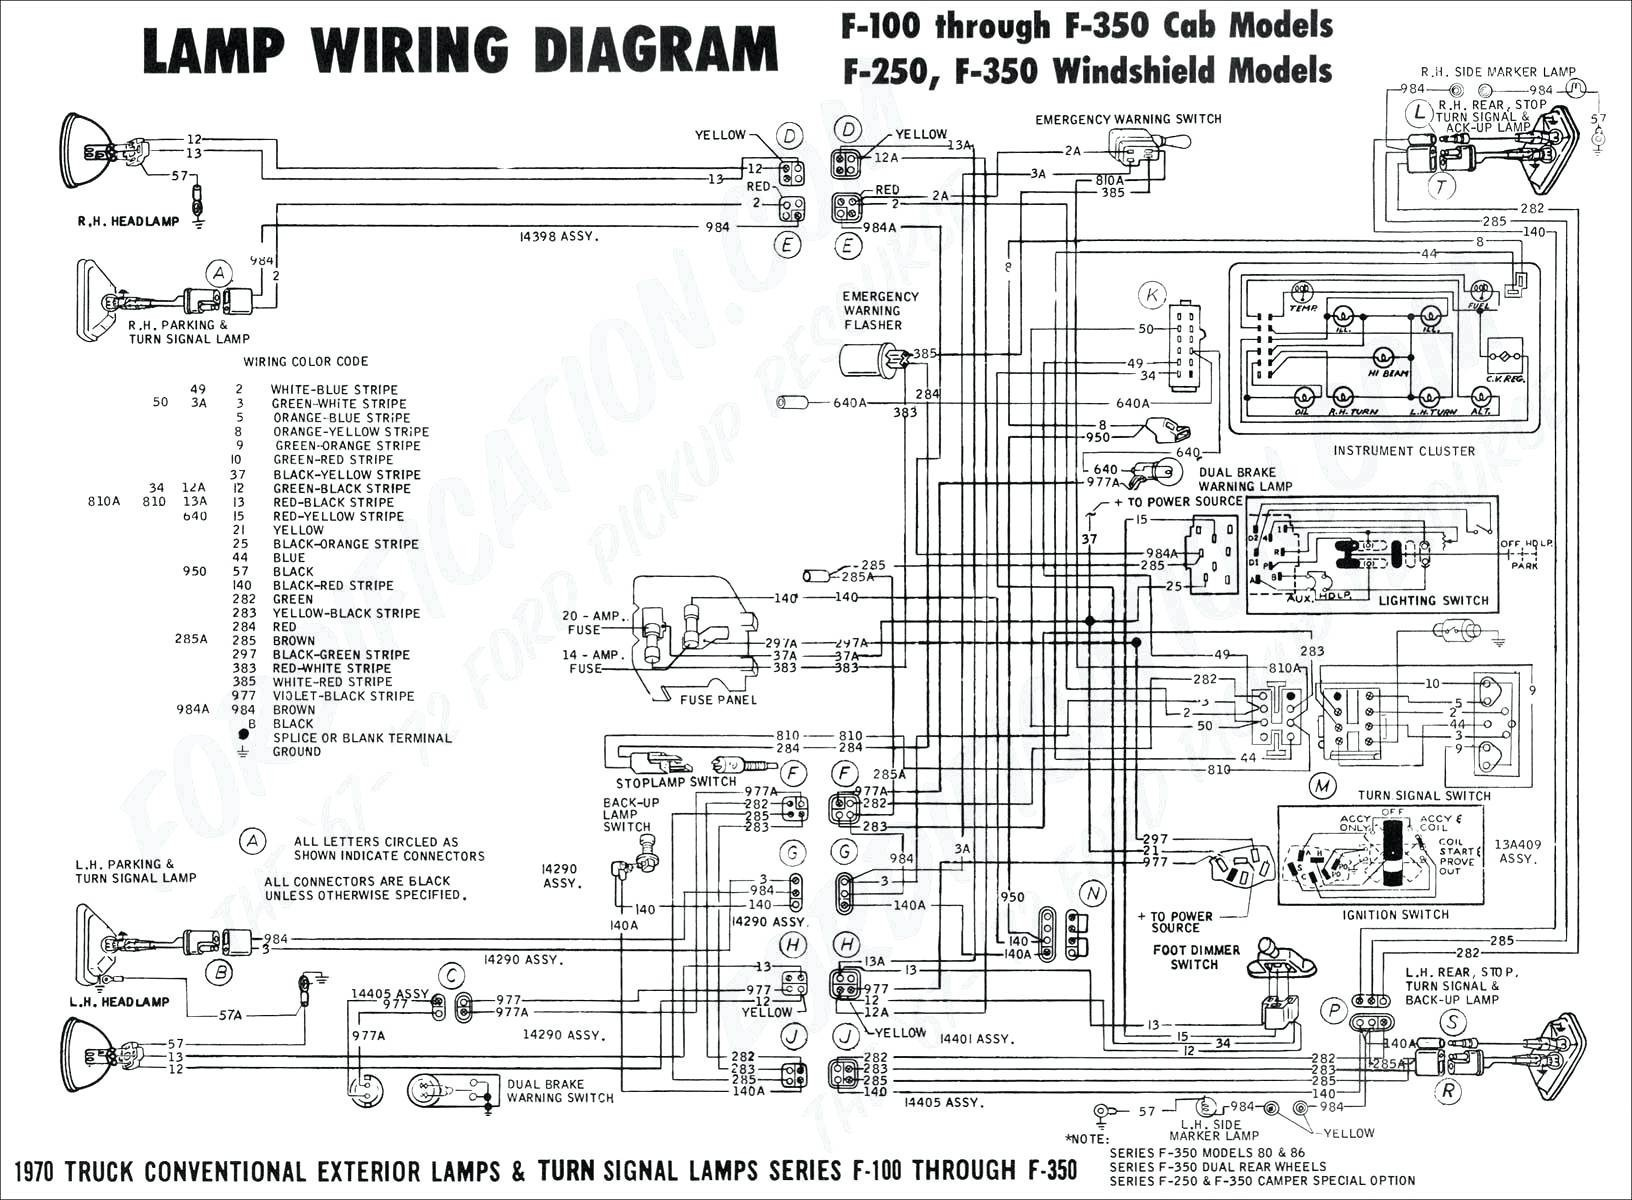 Oldsmobile Alternator Wiring Wiring Diagram Used 2000 Oldsmobile Intrigue Flasher Relay Location Free Download Wiring